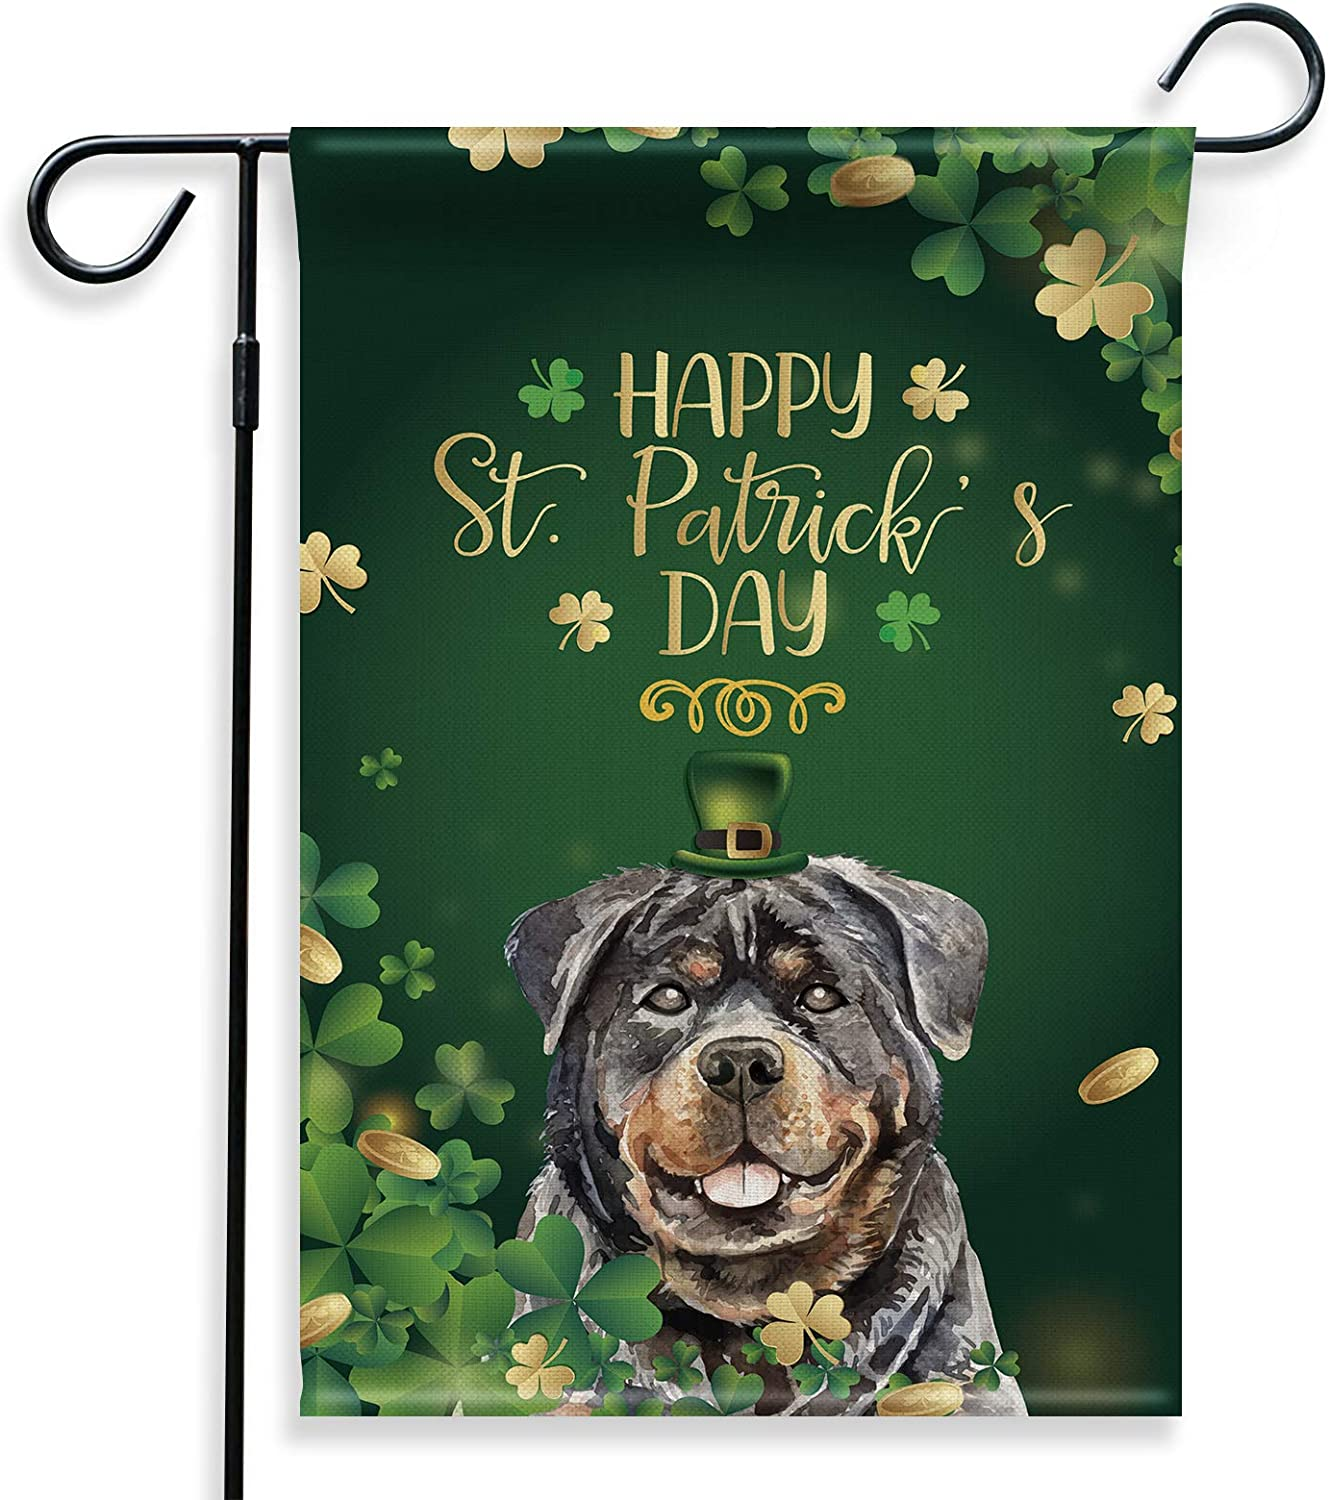 BellowDeer Rottweiler Dog Shamrocks Happy St Patrick's Day Double-Sided Yard Garden Flag Decor for Dog Lover, Dog Owner, Friend, House Yard Garden Indoor Outdoor Decoration